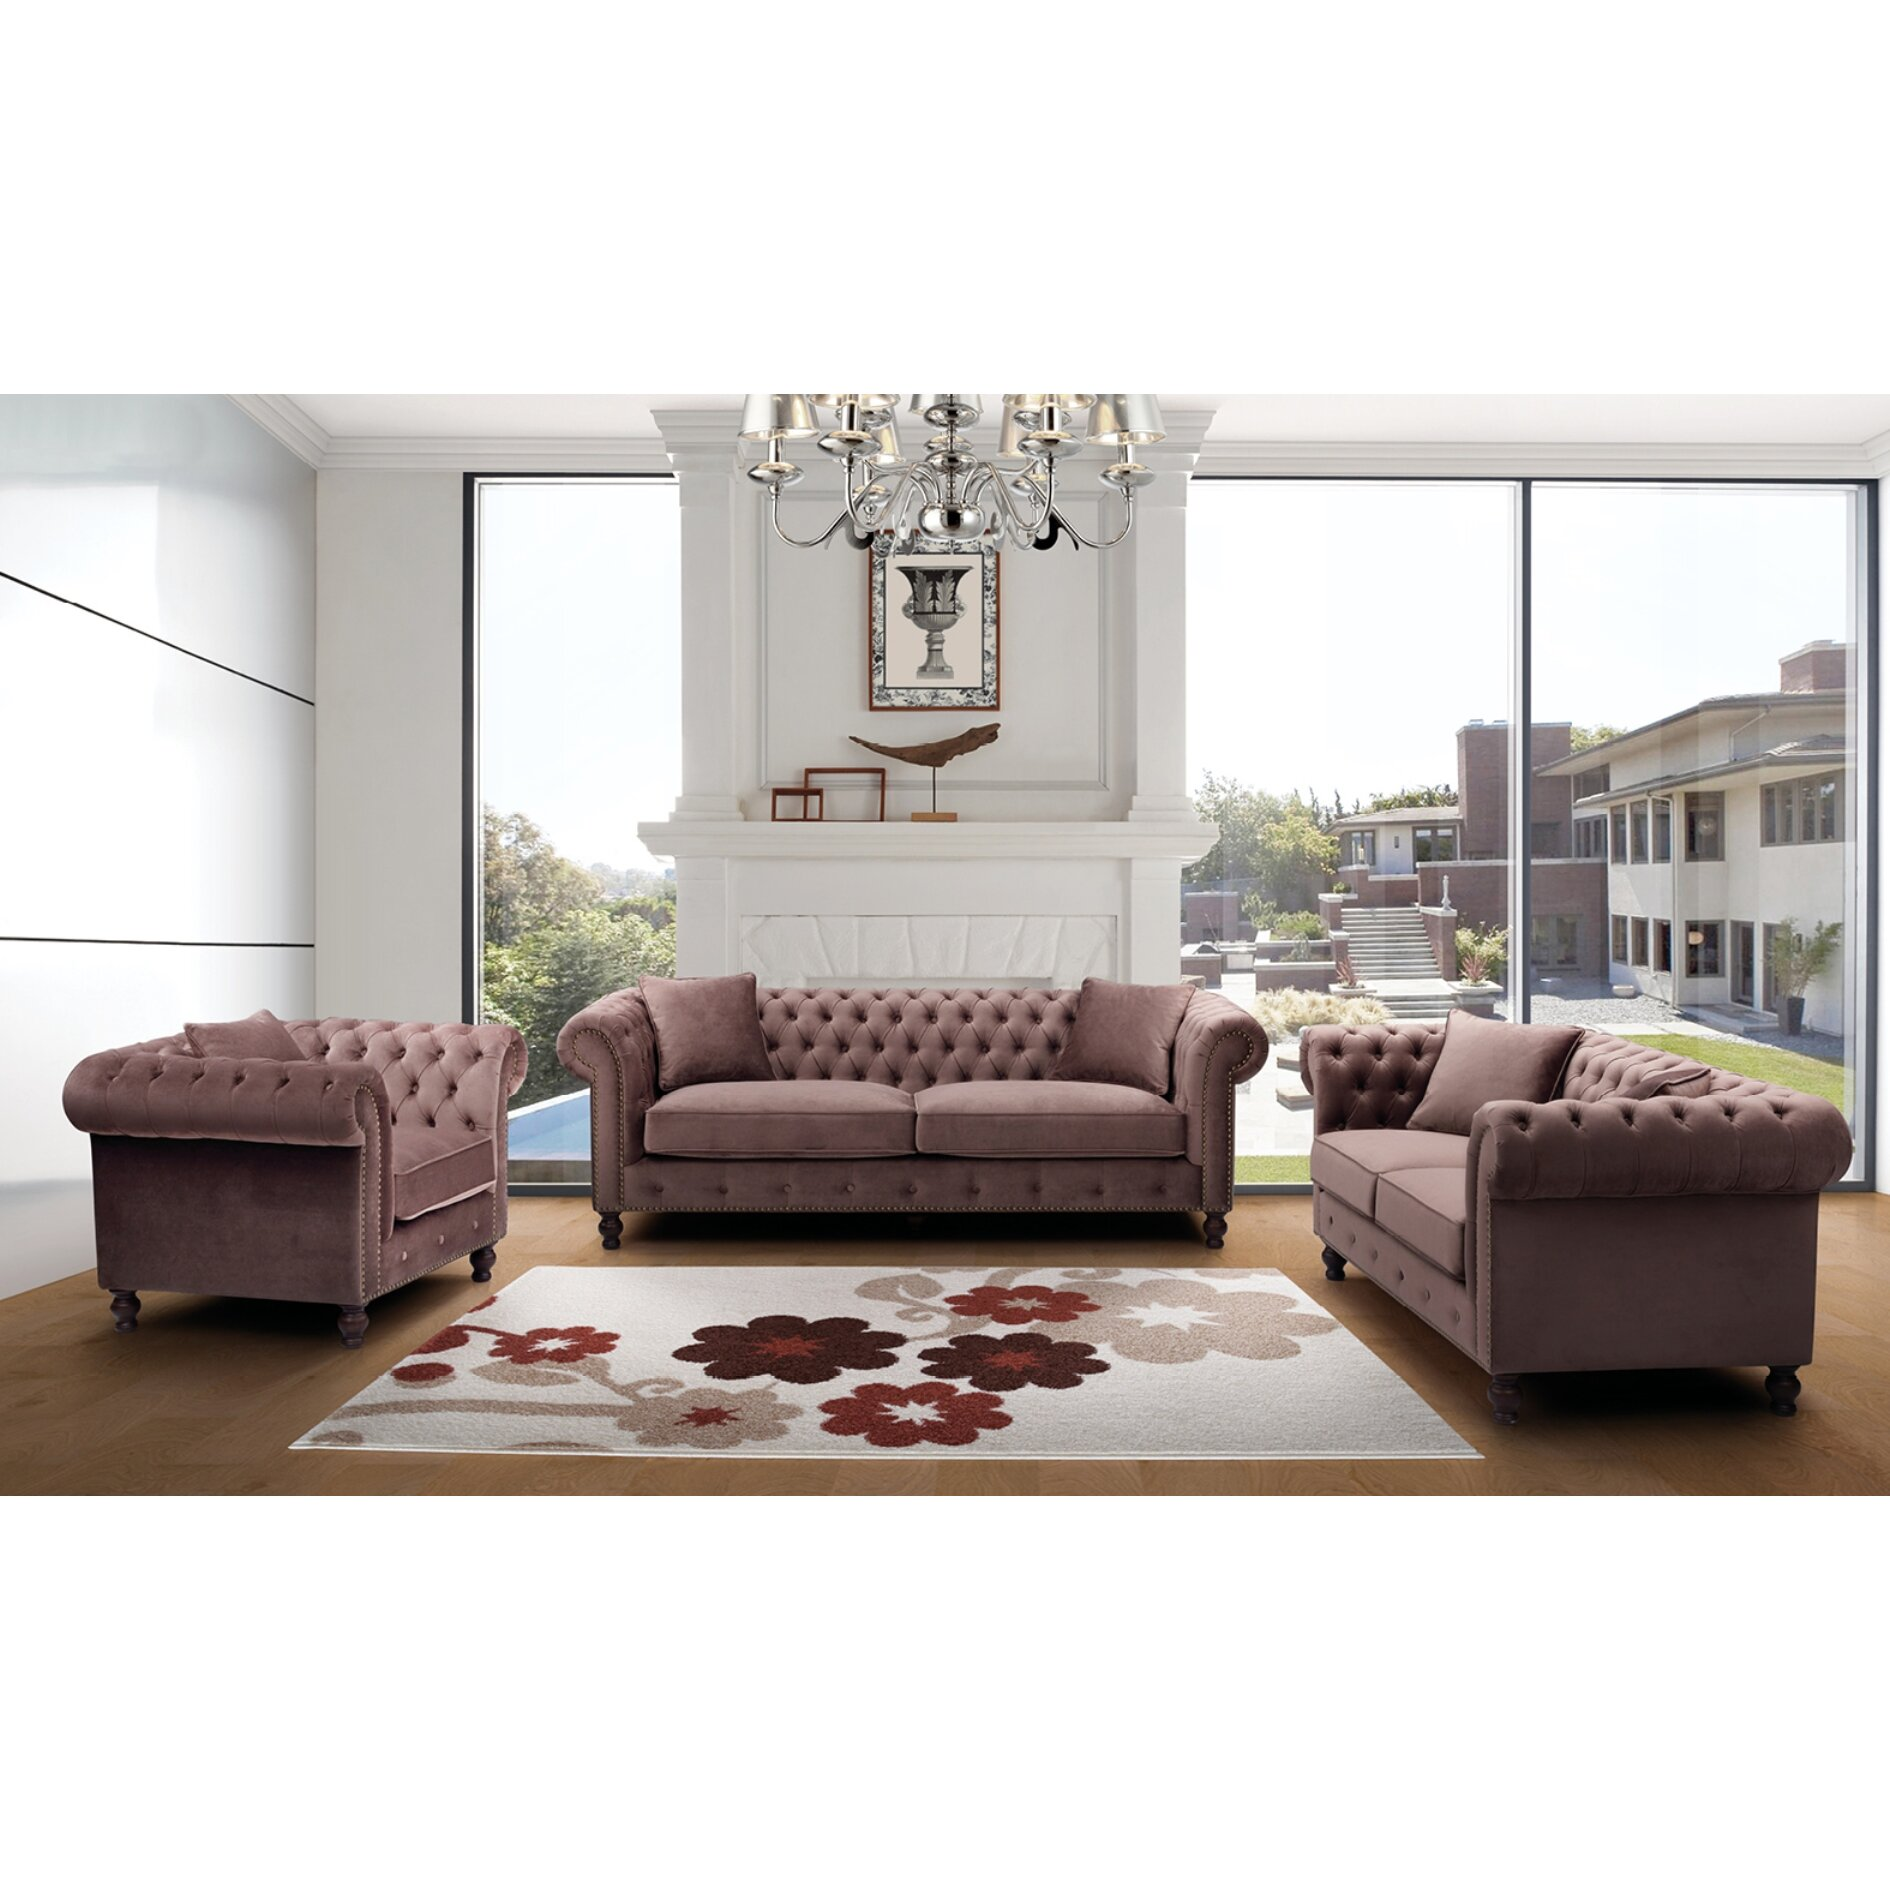 Nocidesign 3 piece living room set wayfair for 3 piece living room furniture